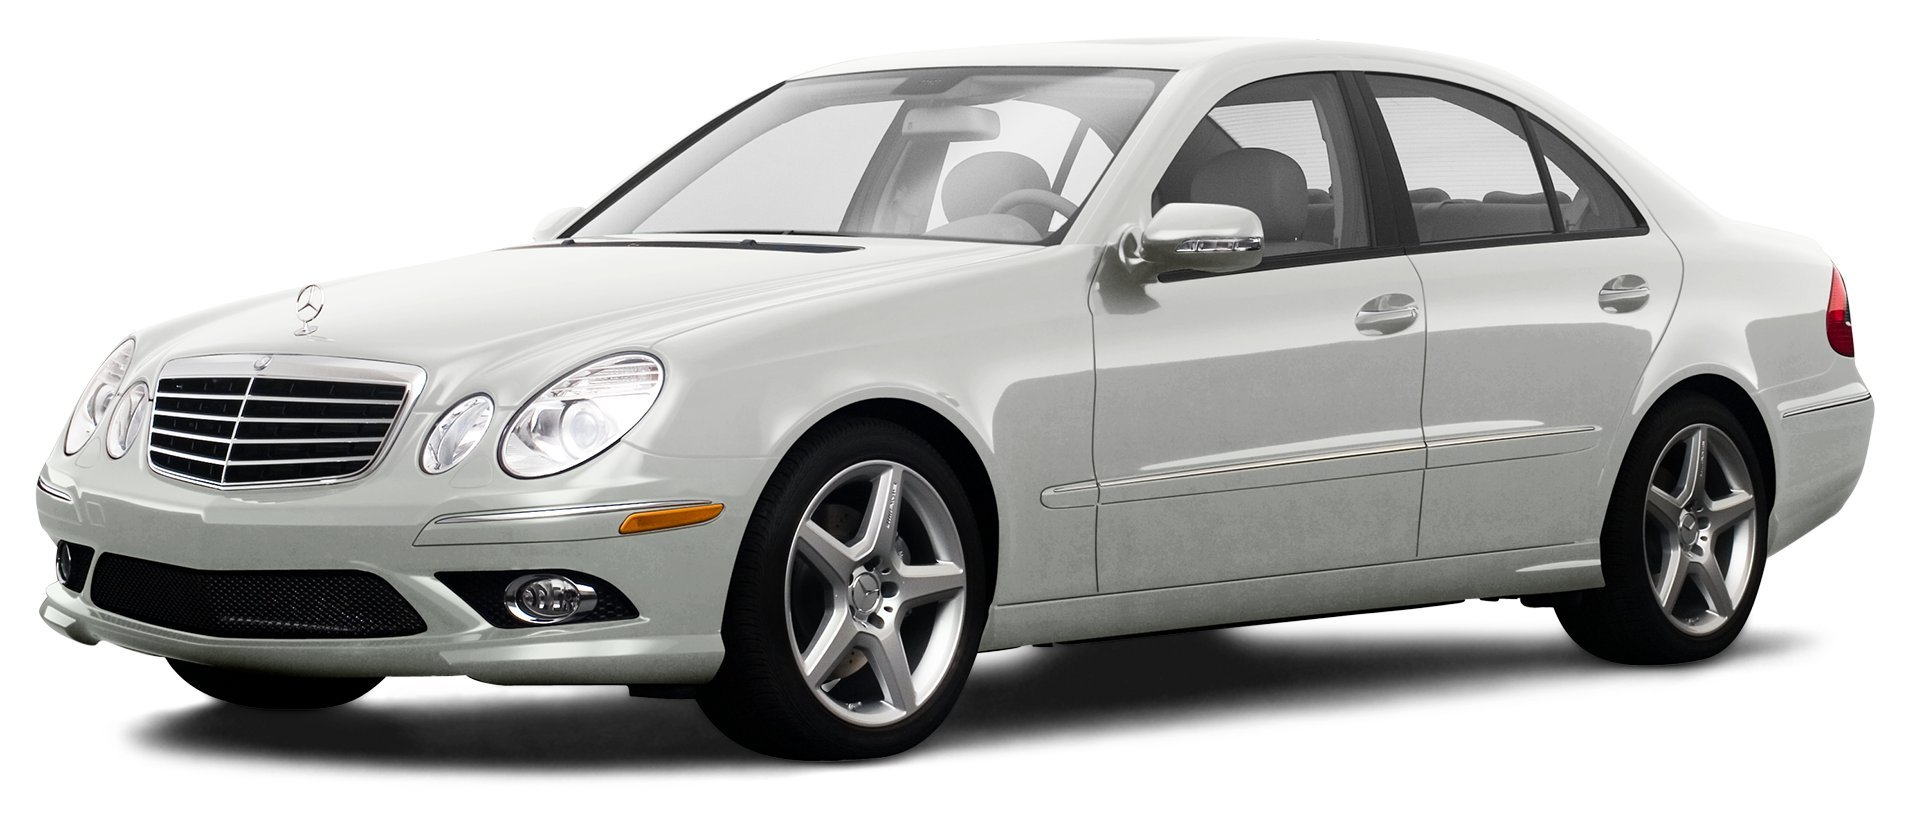 2009 mercedes benz e320 reviews images and for Mercedes benz e320 manual